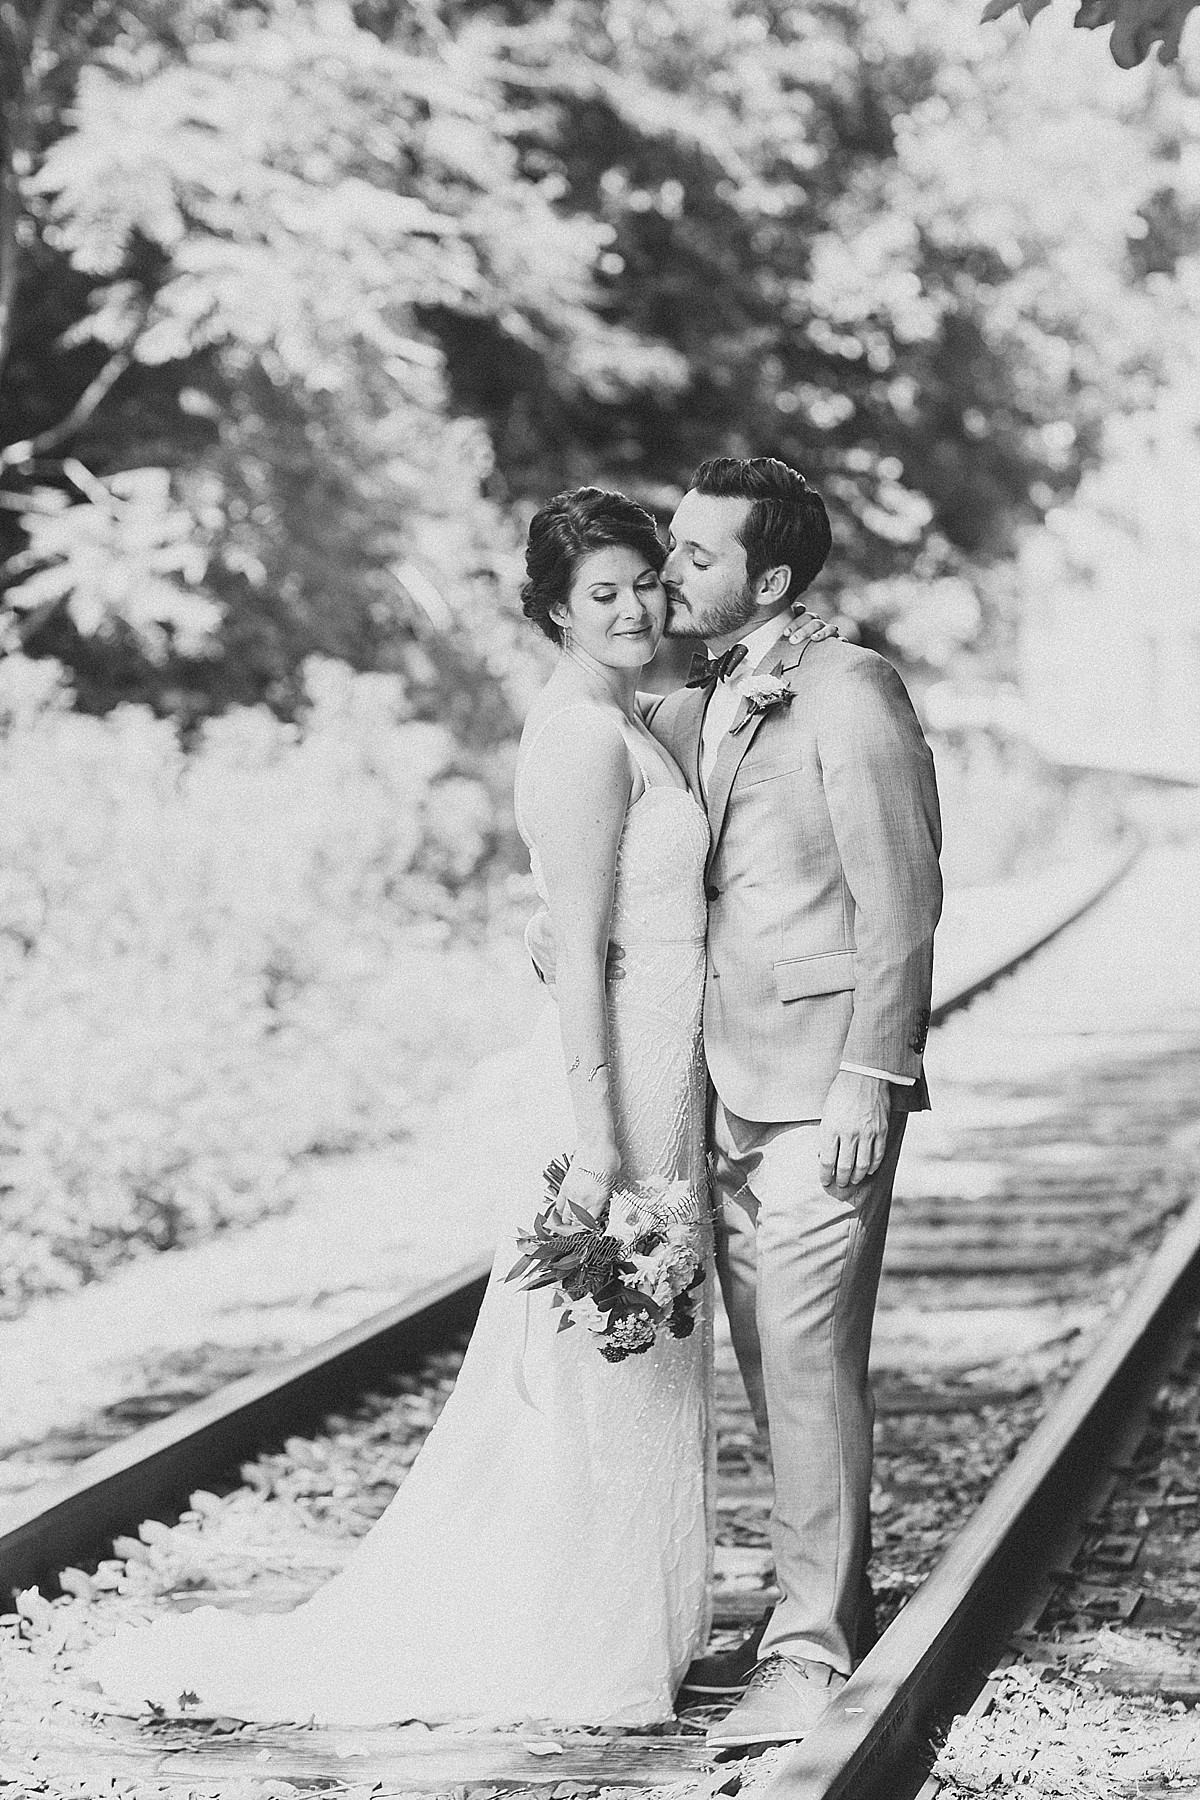 Black and White wedding portraits in Beacon Falls, NY photographed by Clean Plate Pictures.